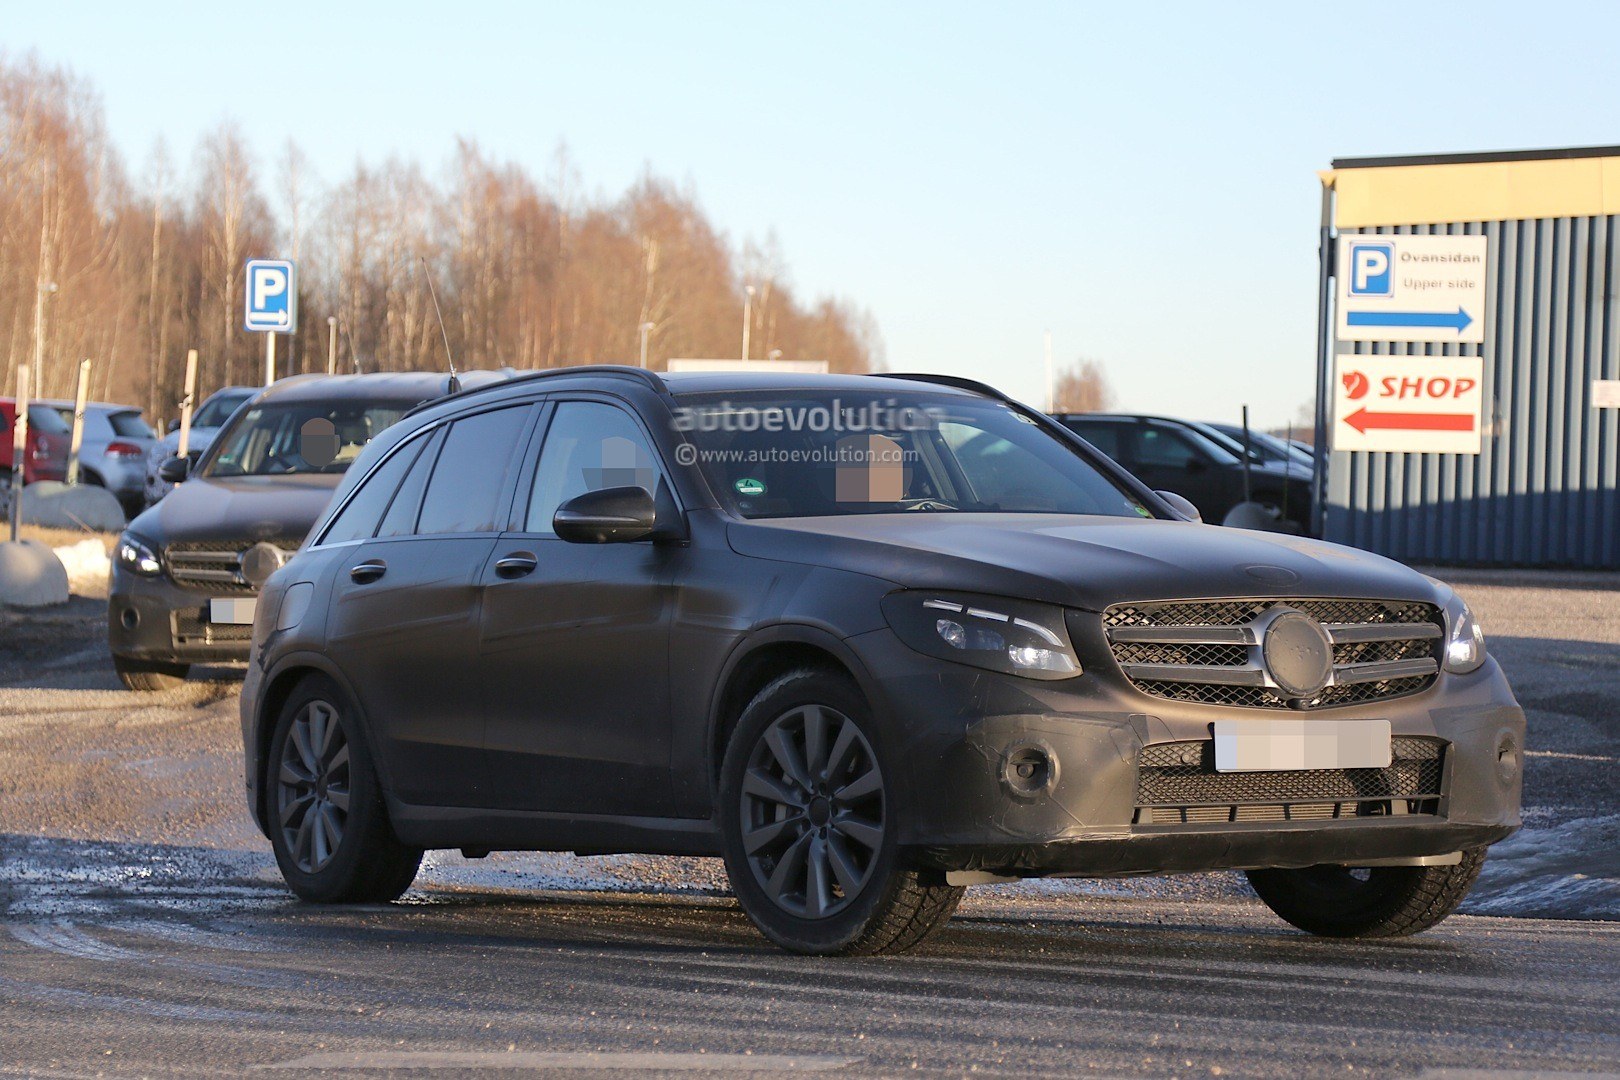 2016 mercedes glc spy photos show nearly undisguised pre production prototypes autoevolution. Black Bedroom Furniture Sets. Home Design Ideas